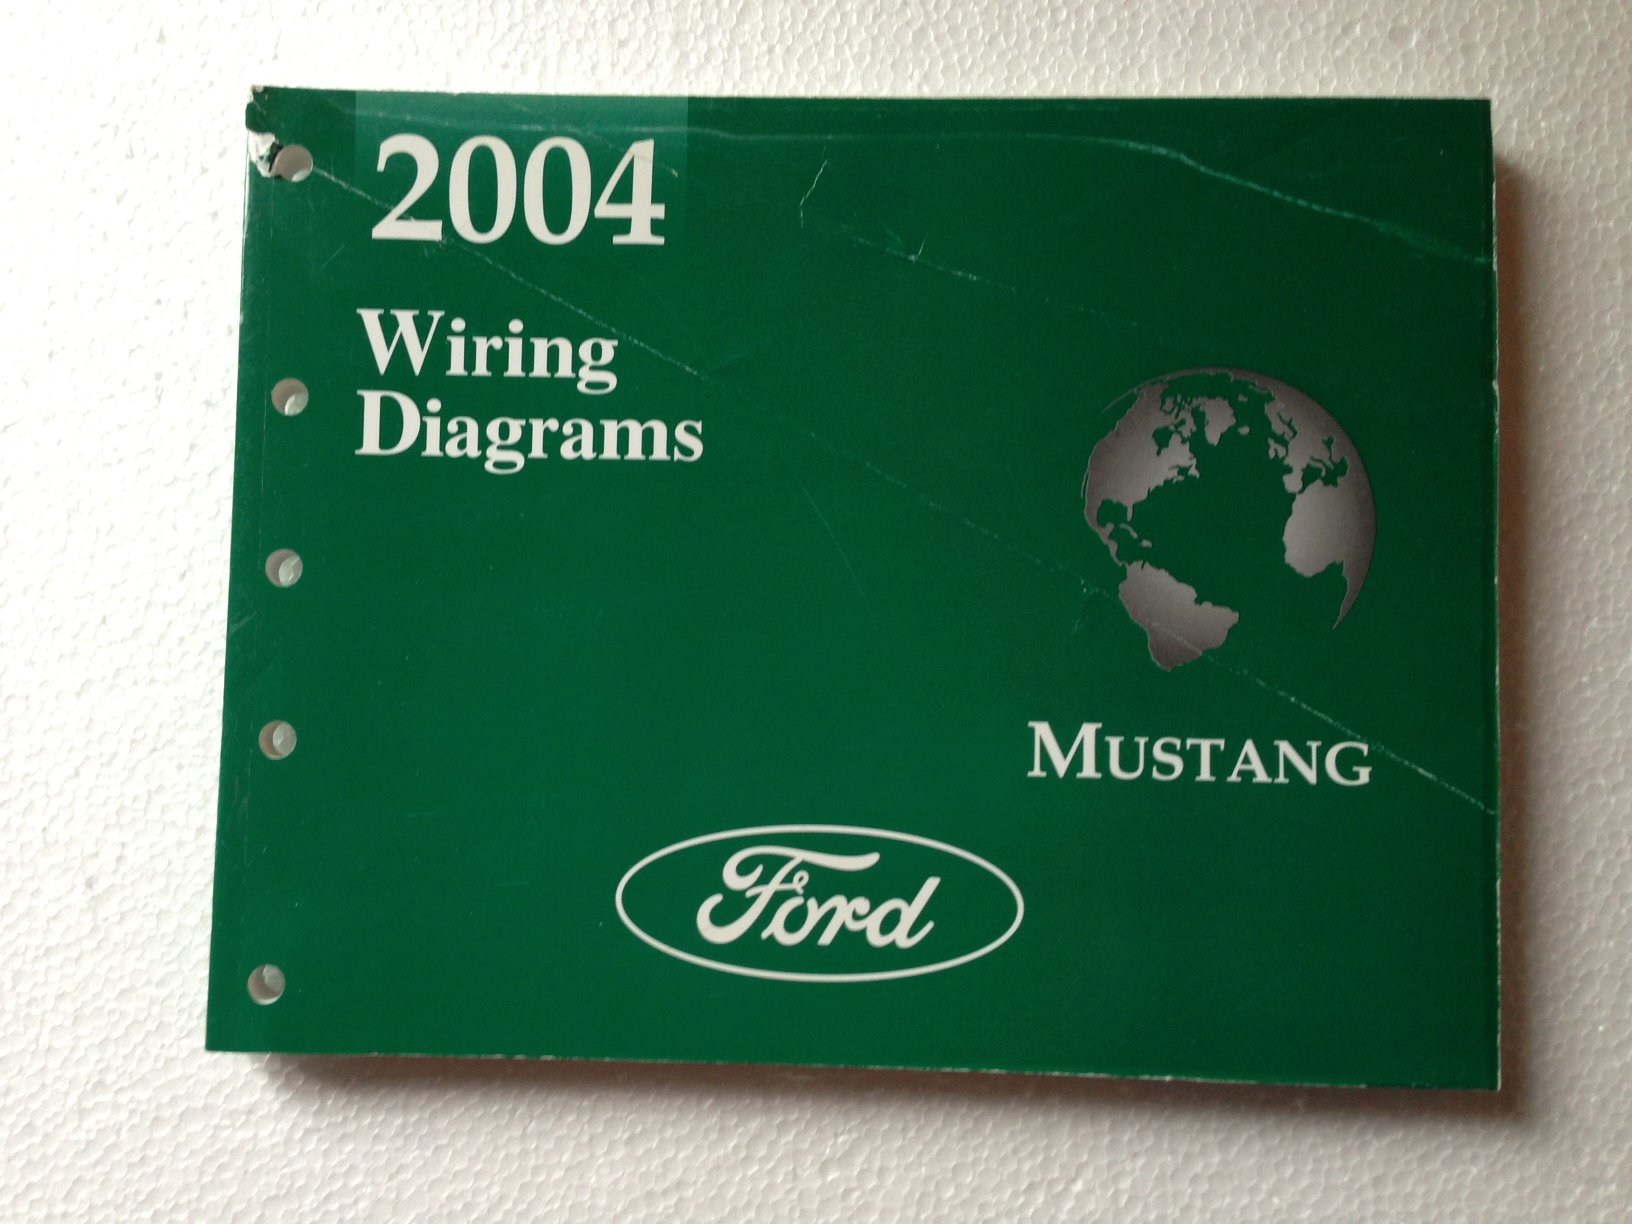 2004 ford mustang wiring diagram manual original paperback – 2004